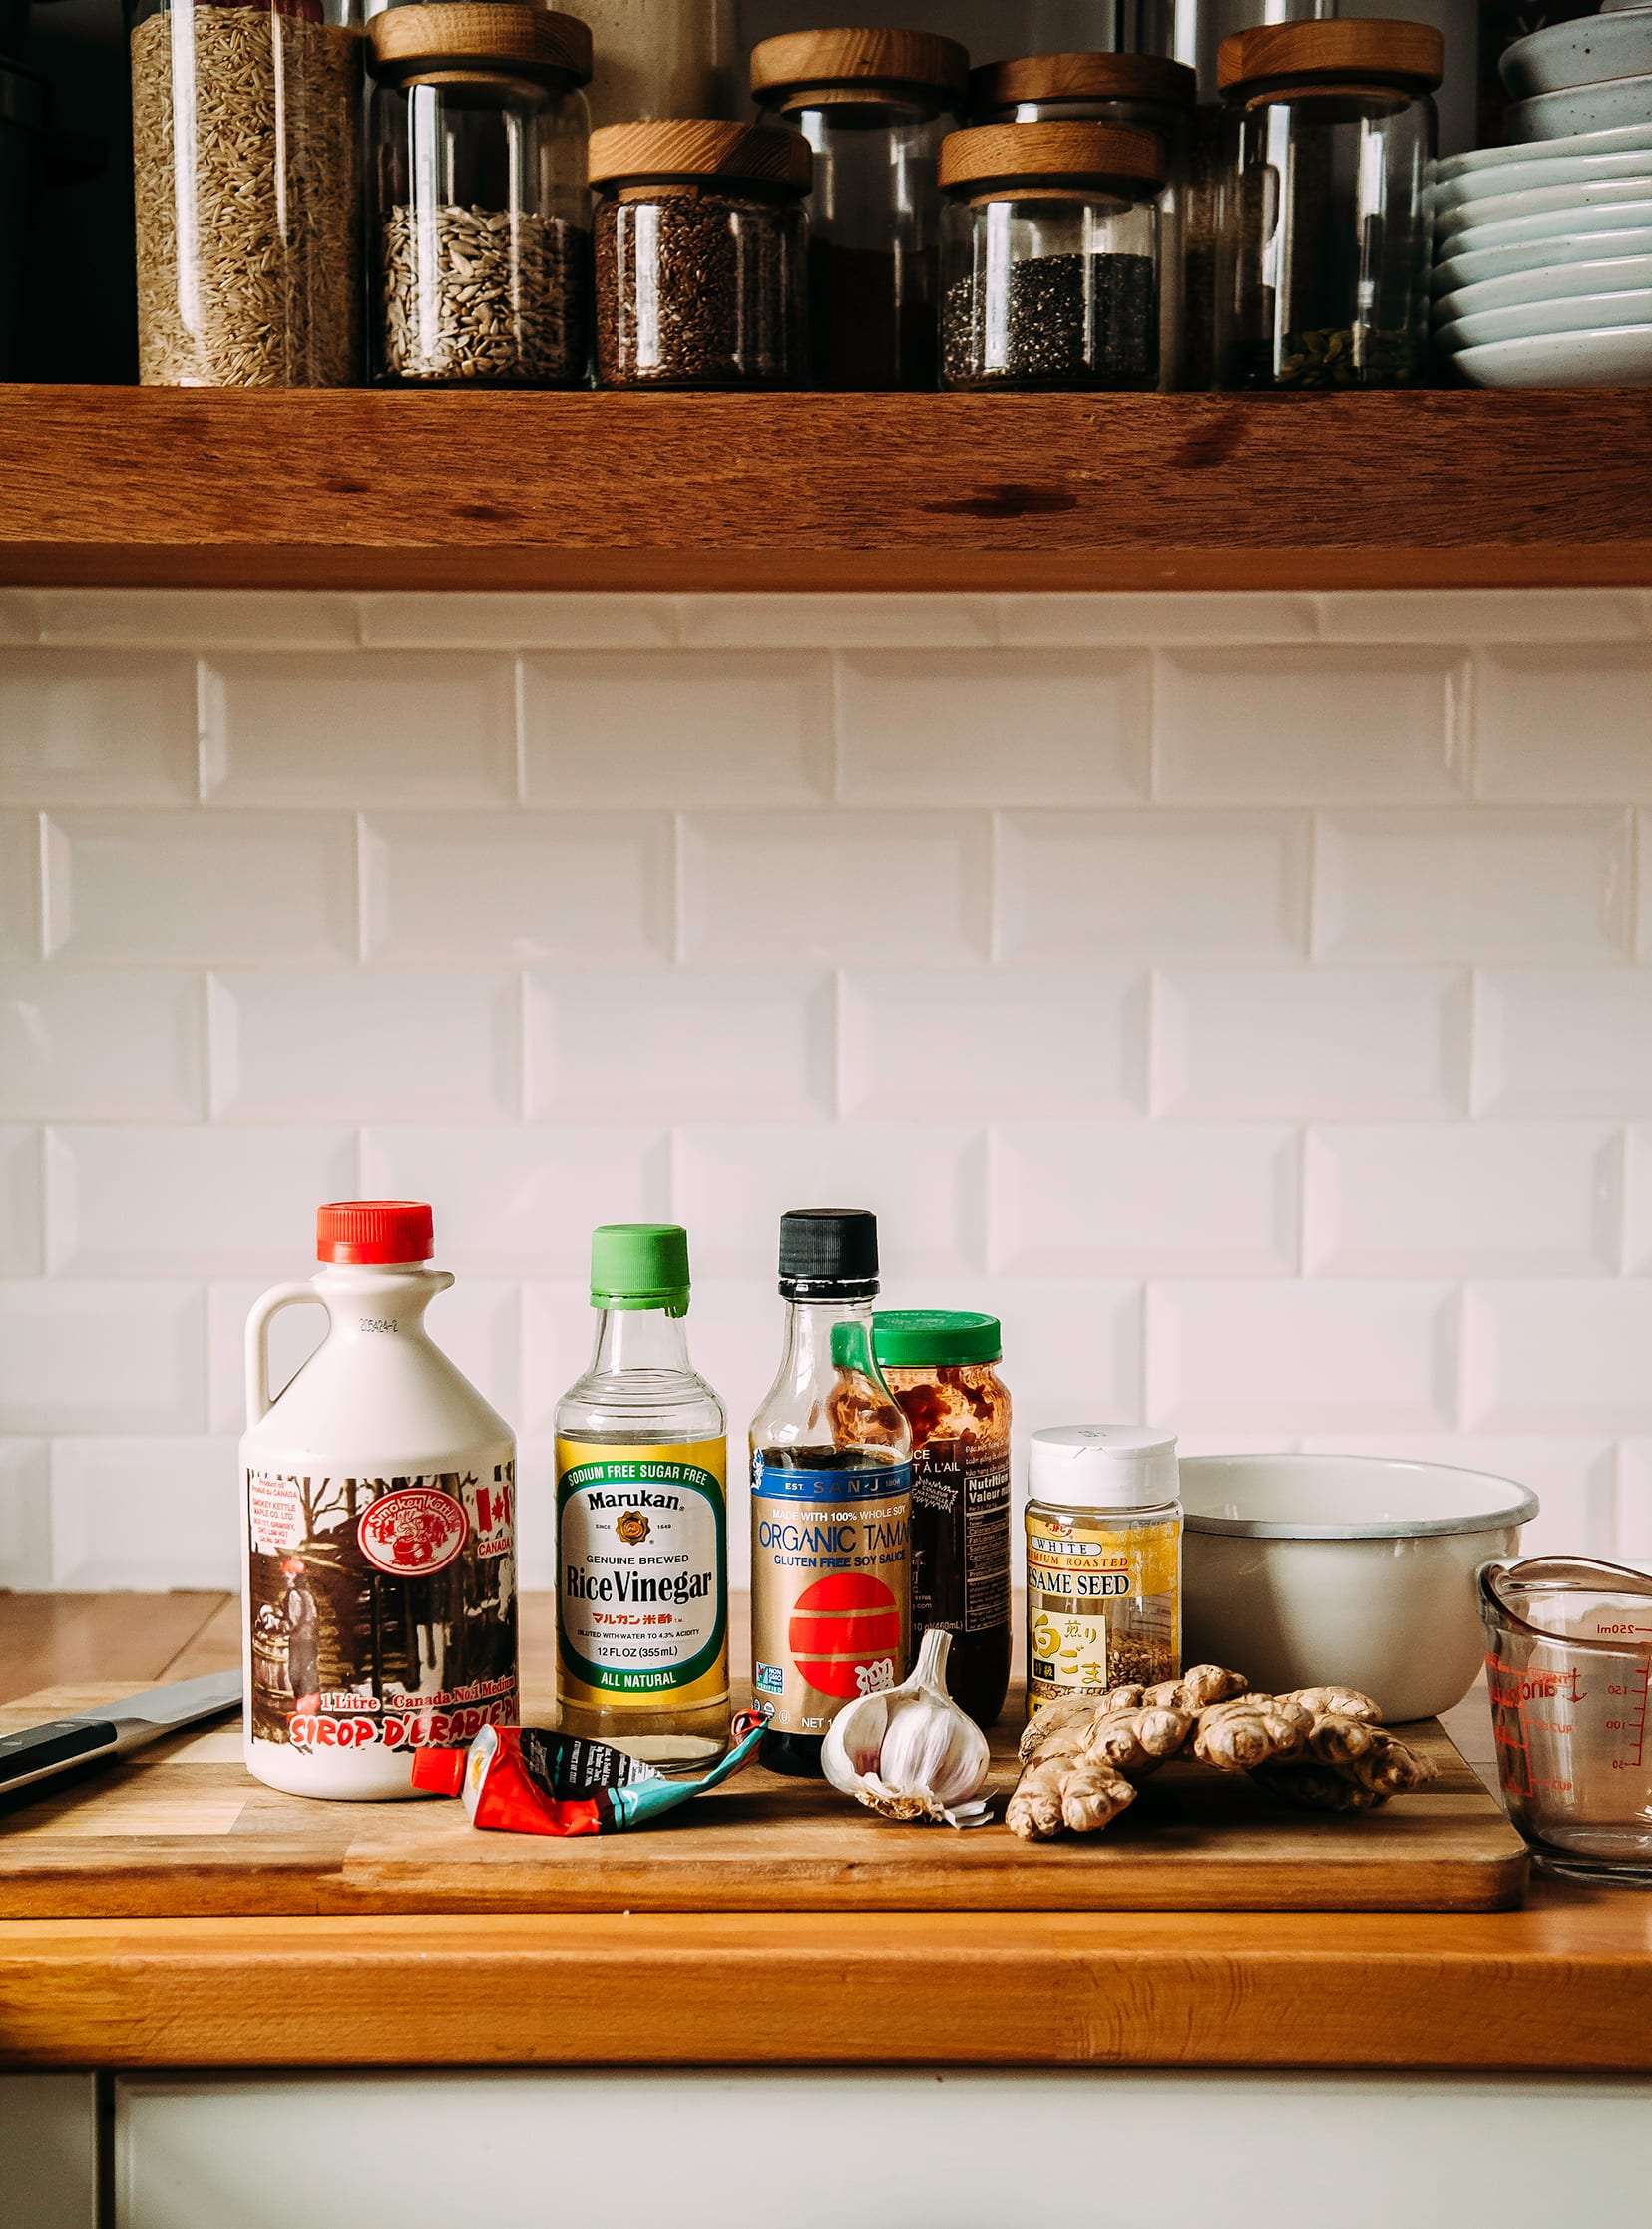 A kitchen counter scene with ingredients for a sesame, ginger, chili sauce.